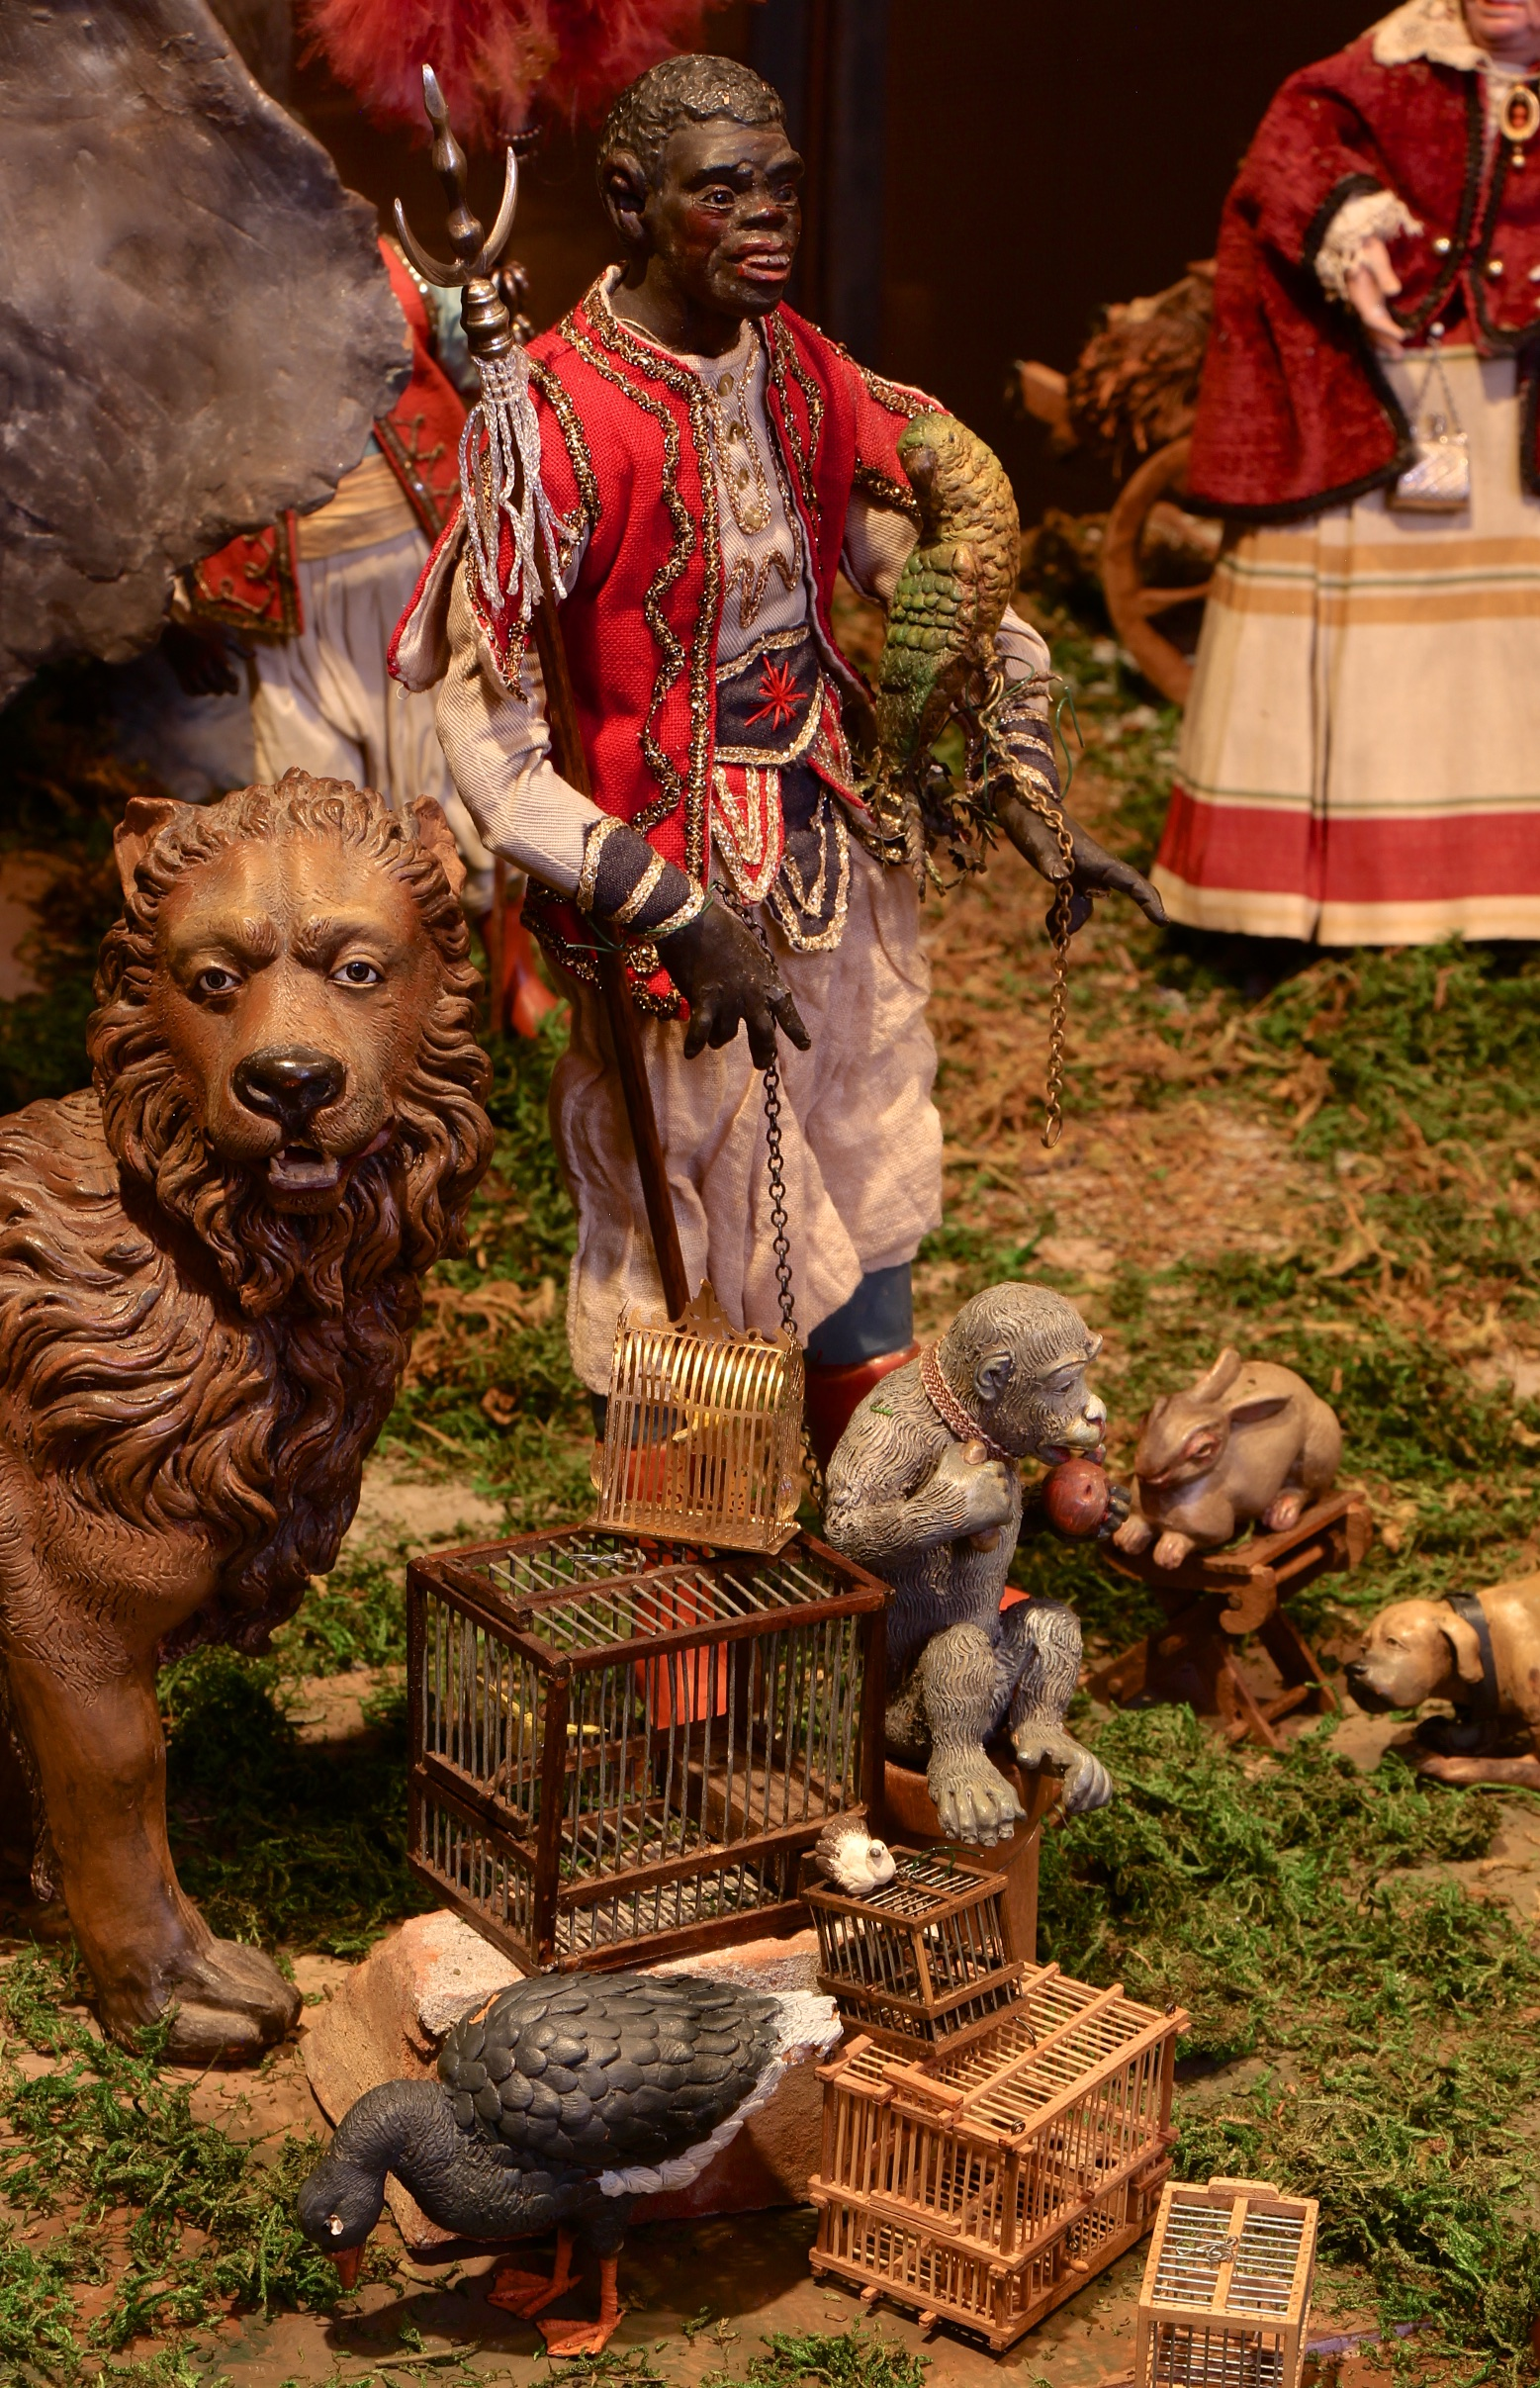 Figure 14: The vendors seem more concerned with their sales than with the excitement at the Roman ruins. An exotic animal vendor with a parrot on his arm restrains a monkey with a leash.